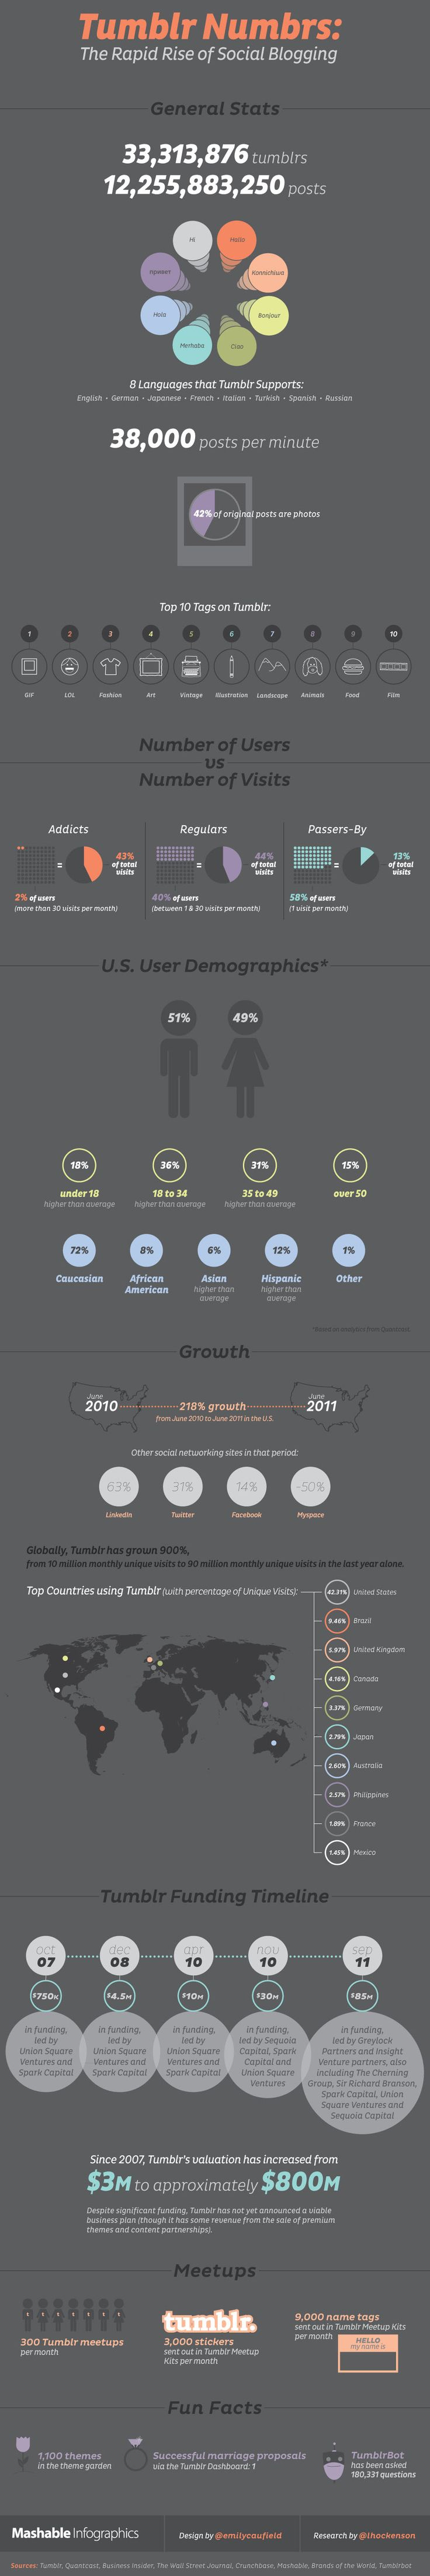 The rapid rise of social blogging